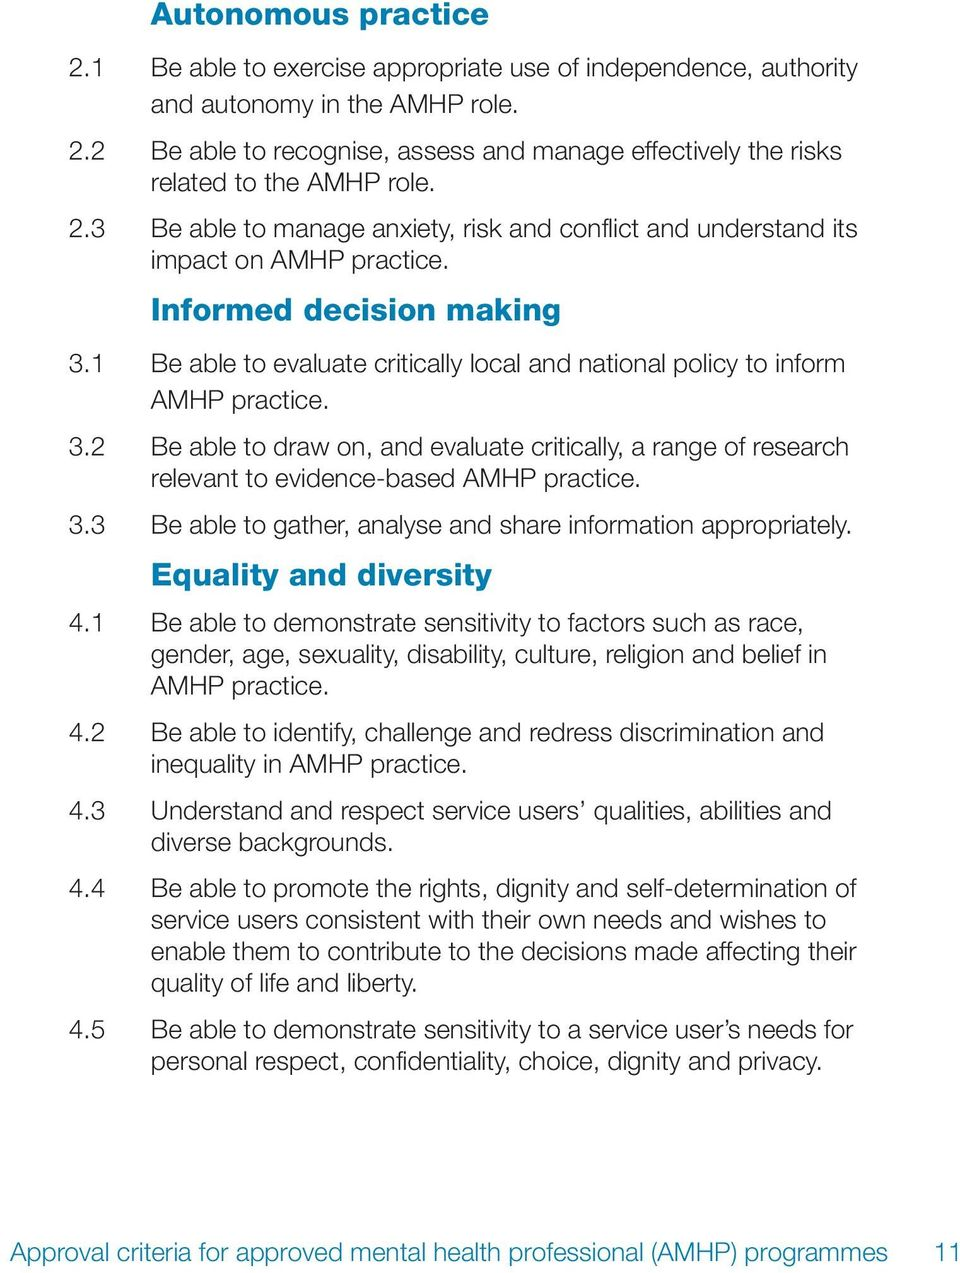 1 Be able to evaluate critically local and national policy to inform AMHP practice. 3.2 Be able to draw on, and evaluate critically, a range of research relevant to evidence-based AMHP practice. 3.3 Be able to gather, analyse and share information appropriately.